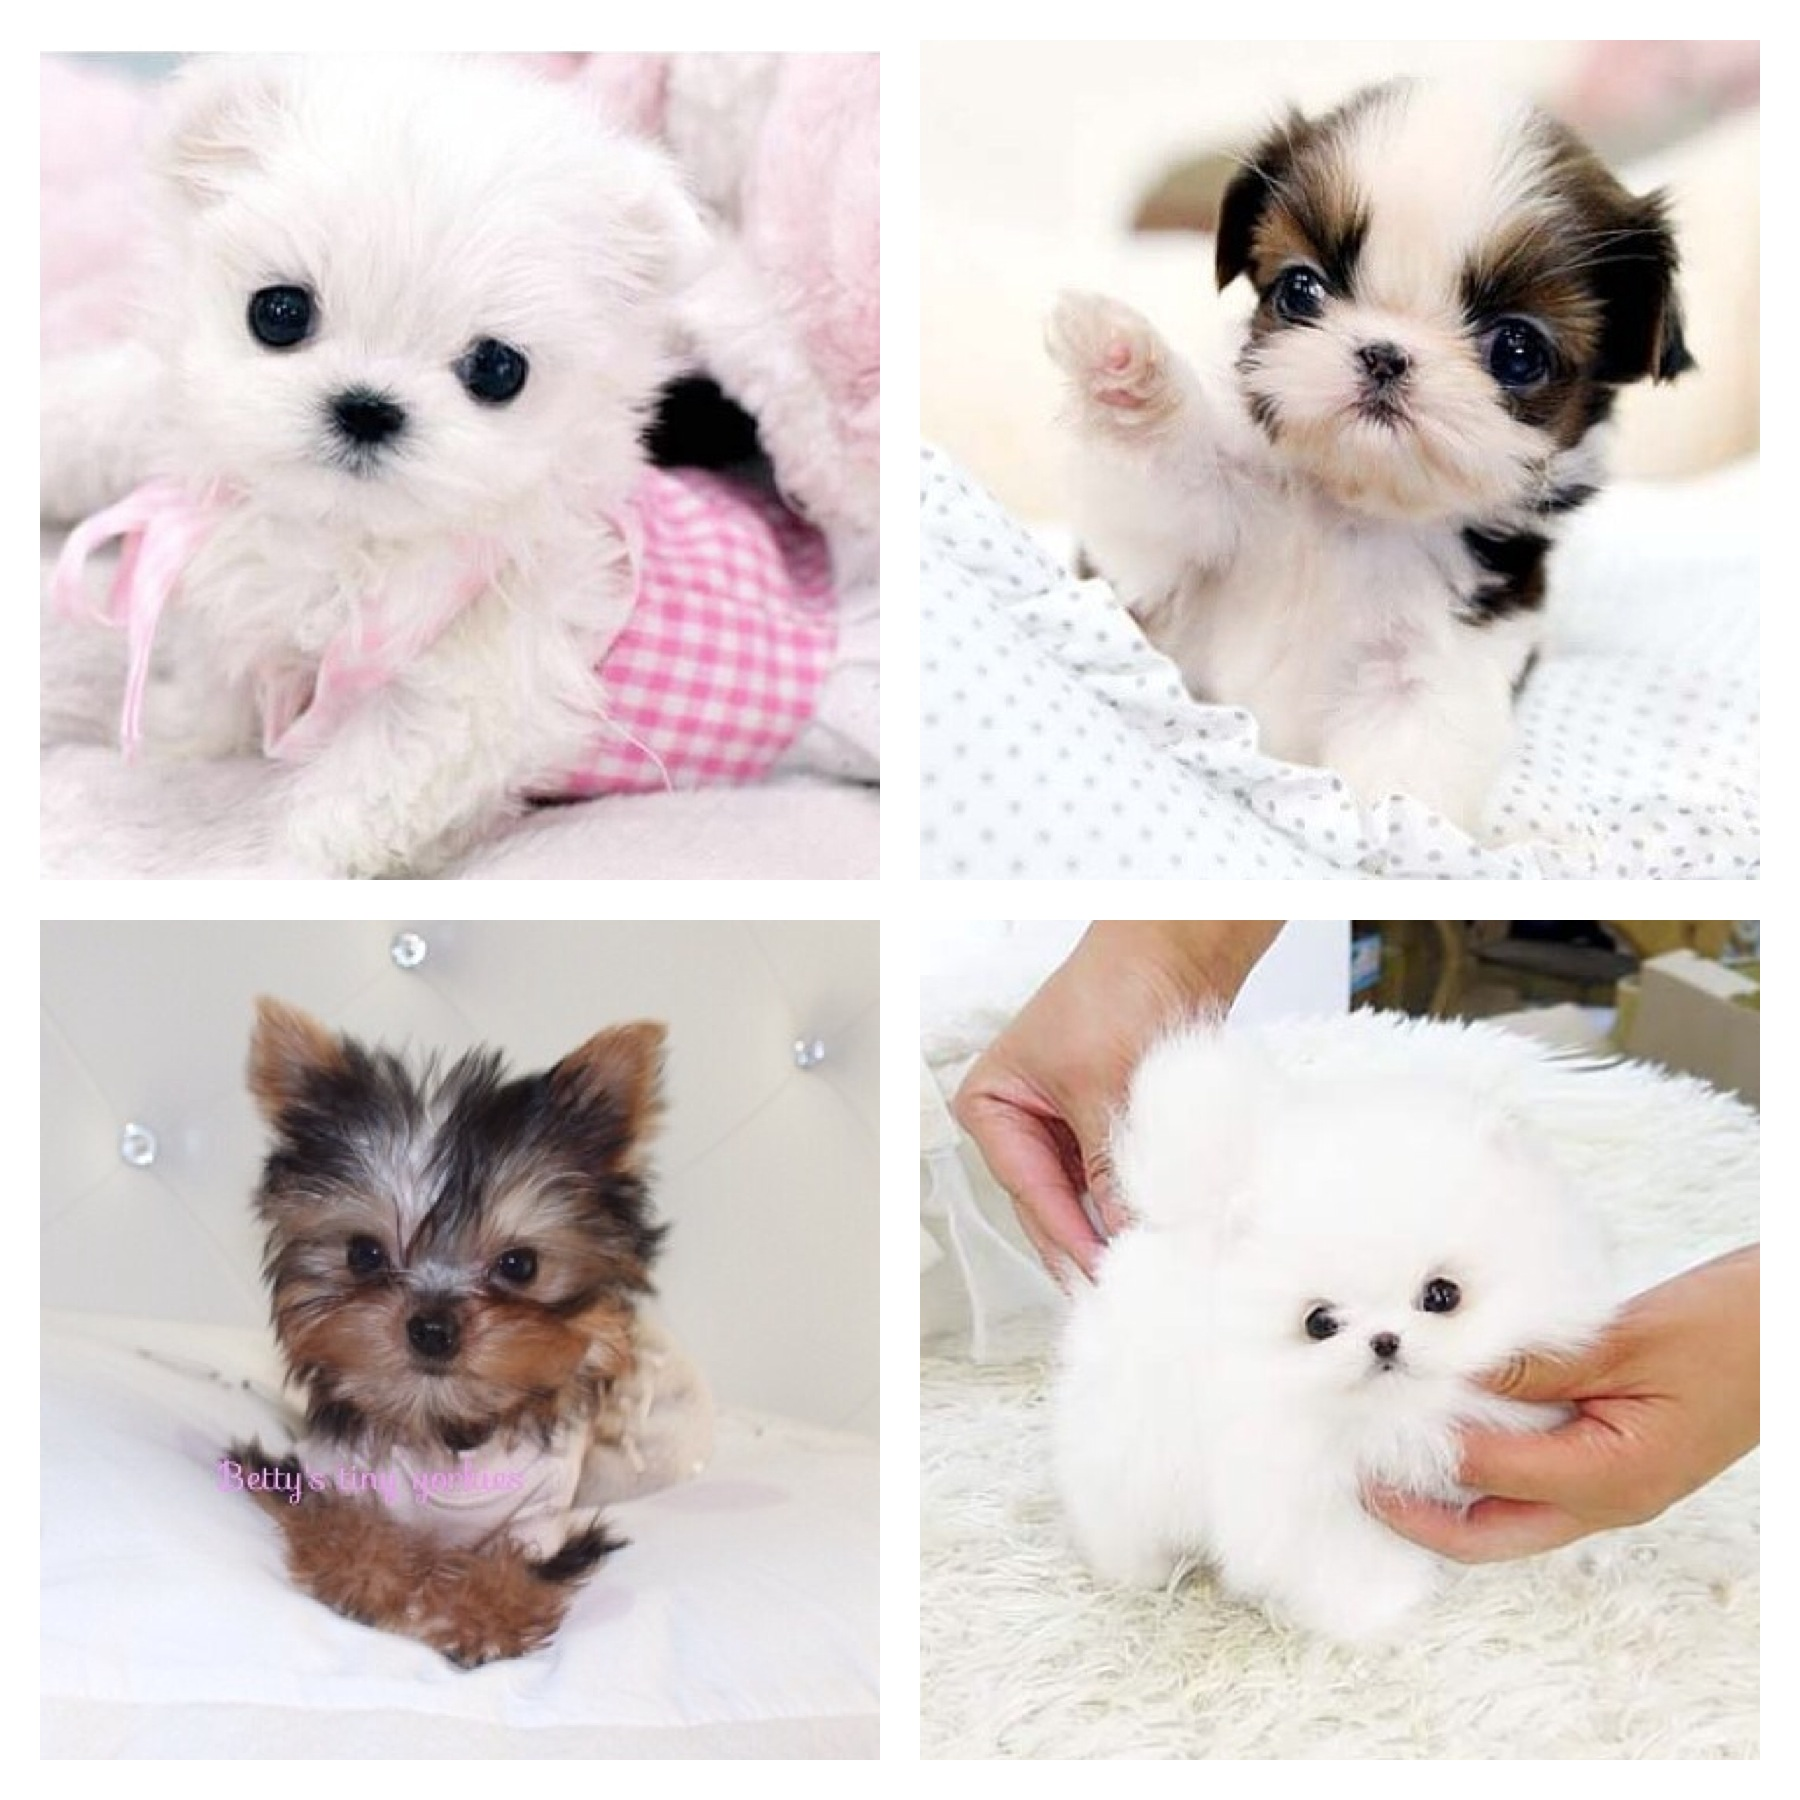 Chelsea chihuahua news we are delighted to announce we are now able to offer our customers micro and teacup pomeranians maltese shih tzu and yorkie you have seen the photos on nvjuhfo Images